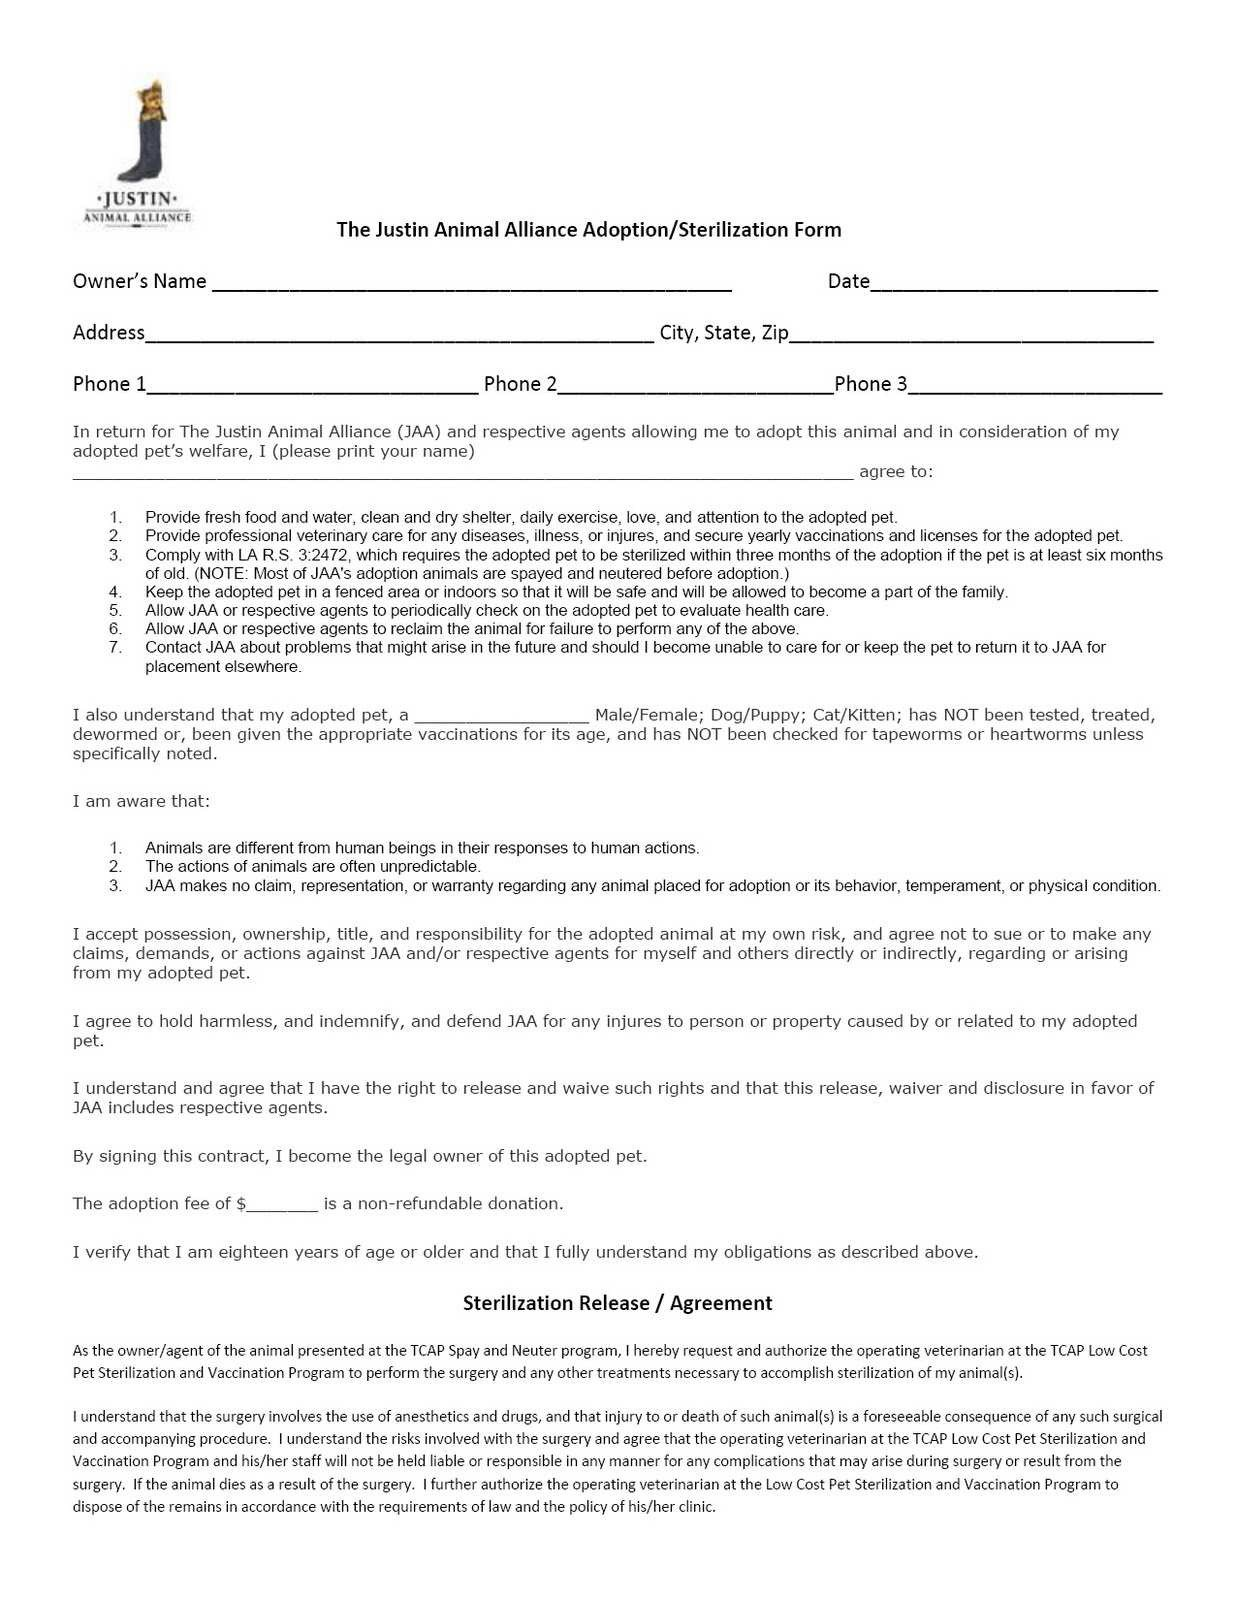 Spay and Neuter Contract Template Spay Neuter Agreement Contract Fast Puppy Application